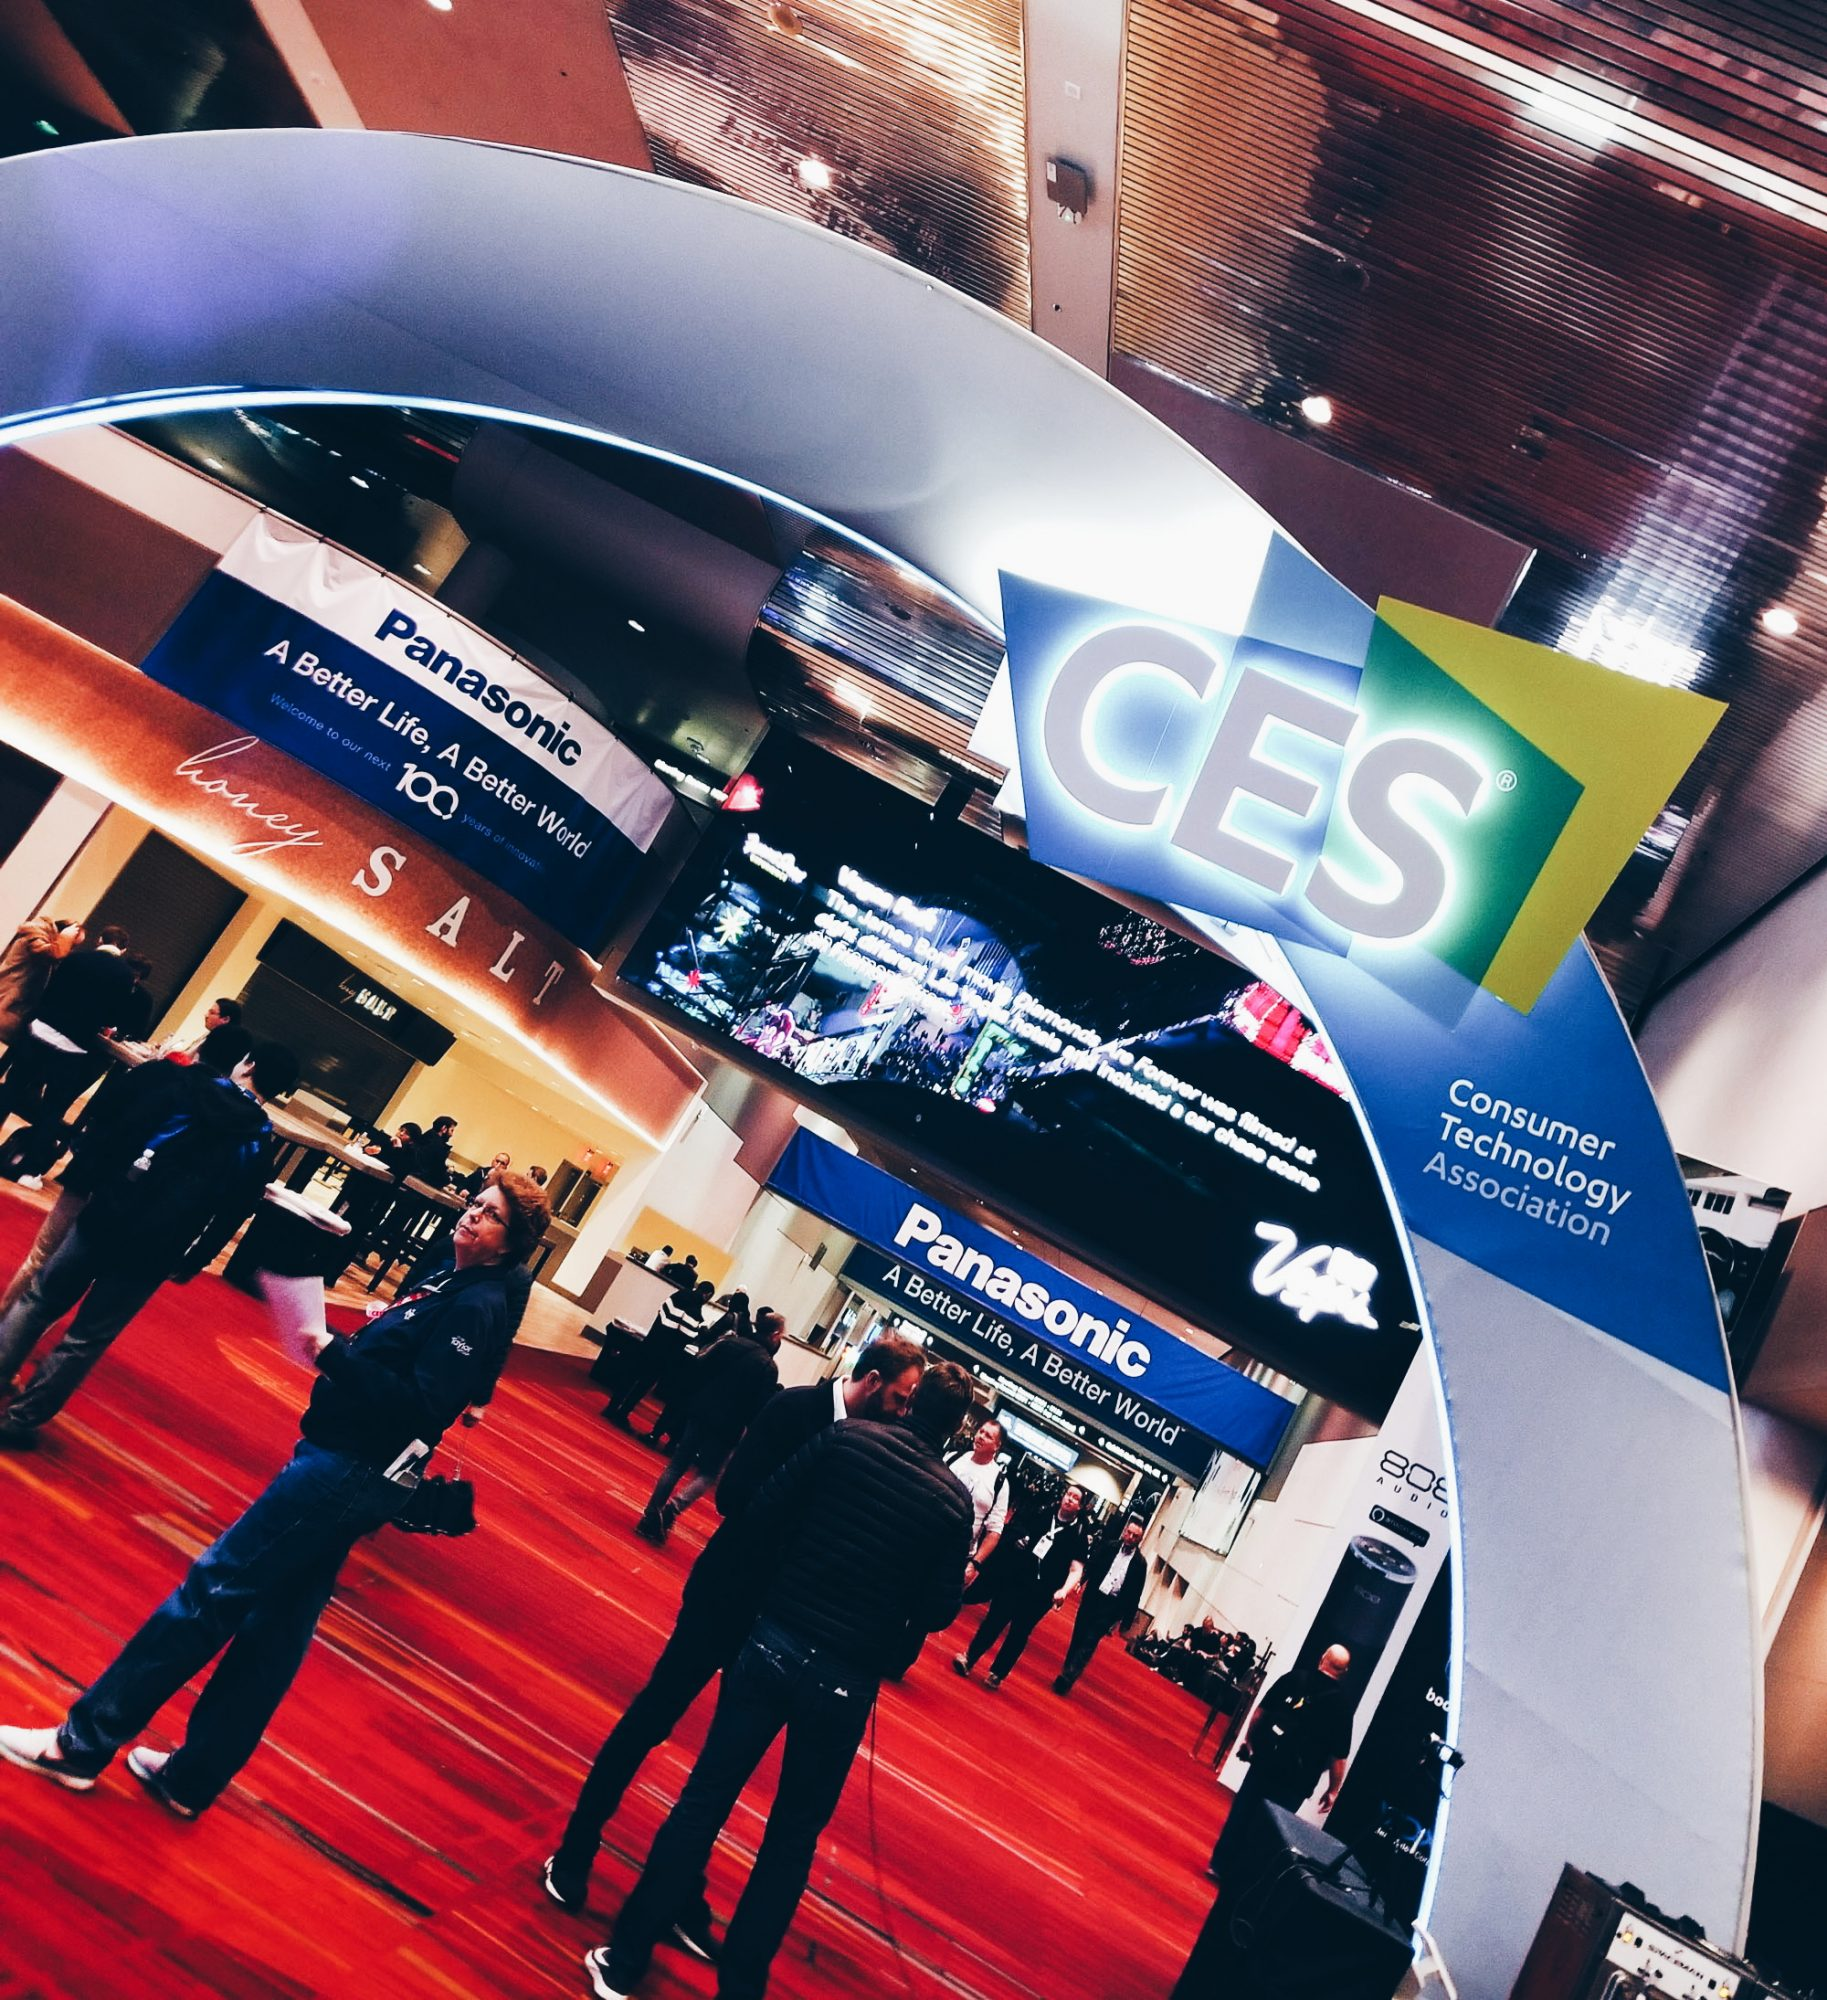 Las Vegas Convention Center CES 2018